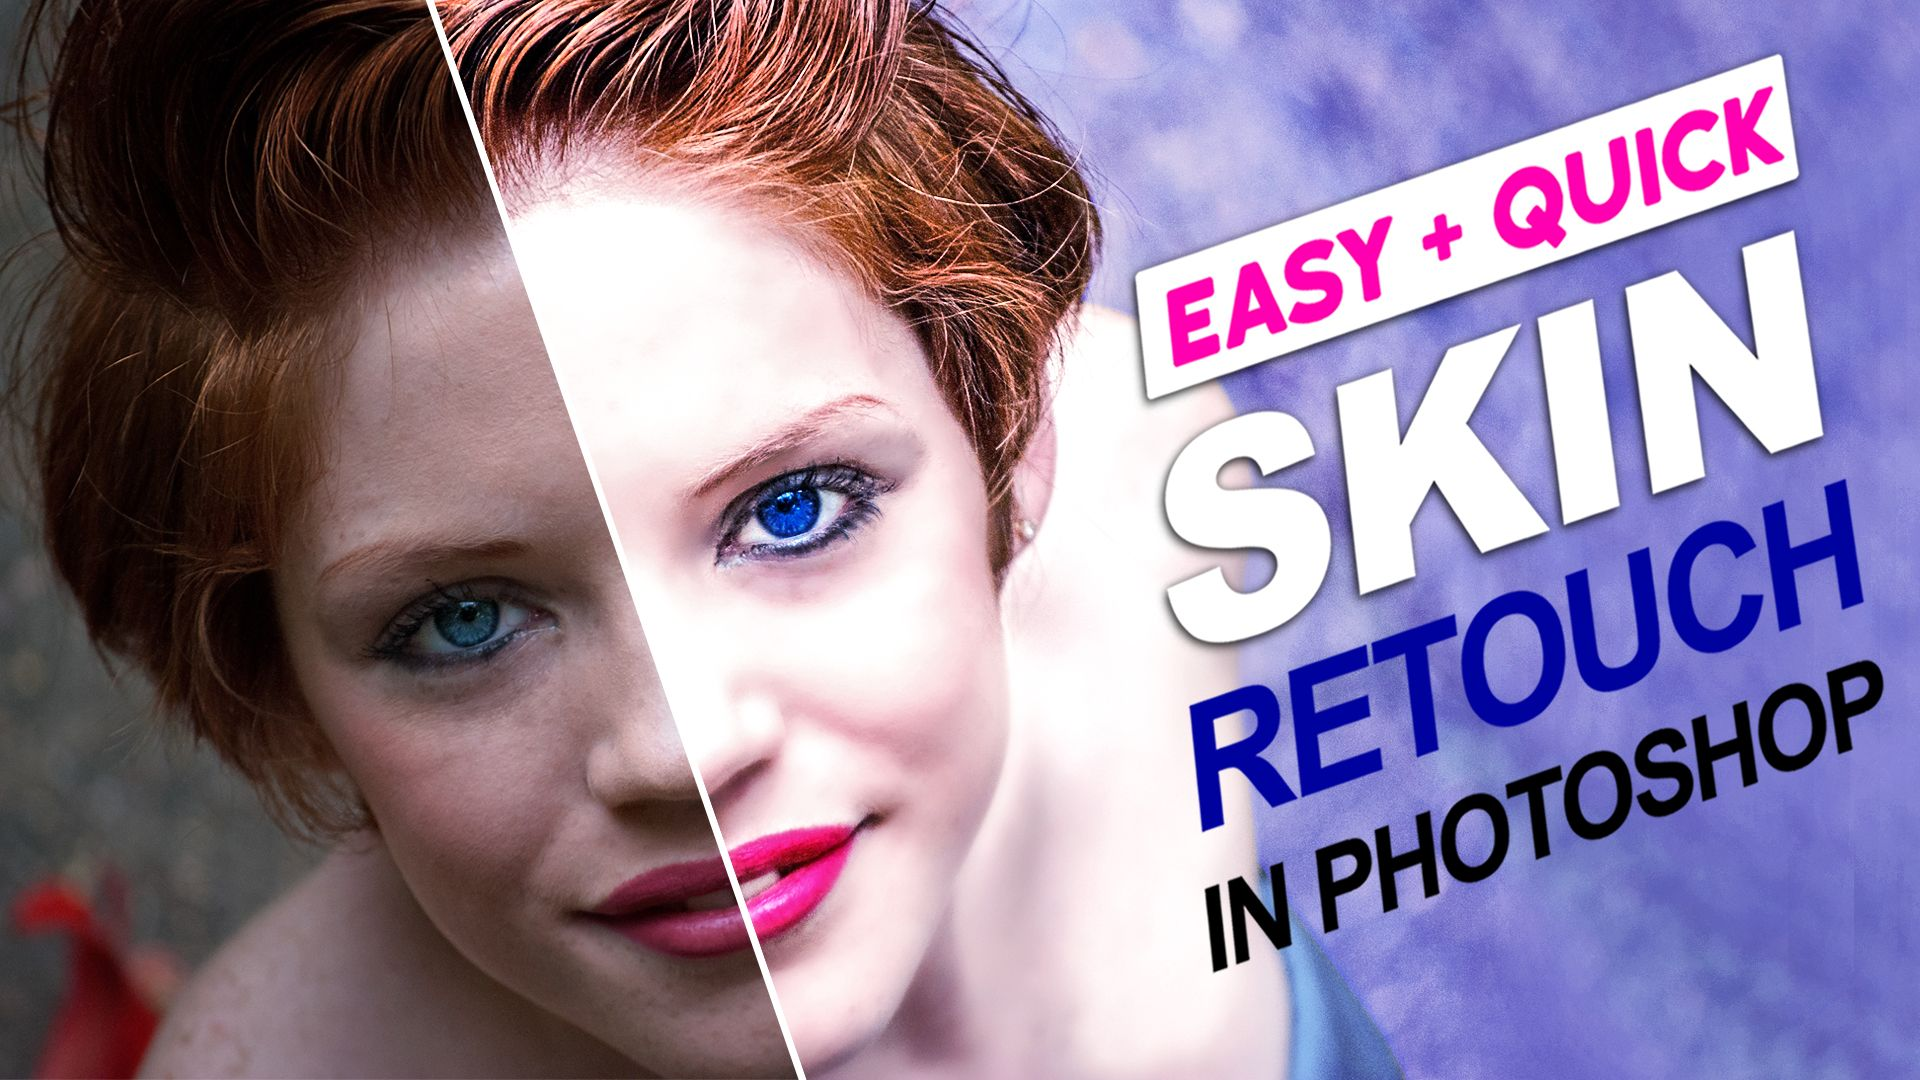 Smooth and soft skin retouching in photoshop easy way beauty smooth and soft skin retouching in photoshop easy way beauty skin retouch tutorial link baditri Image collections